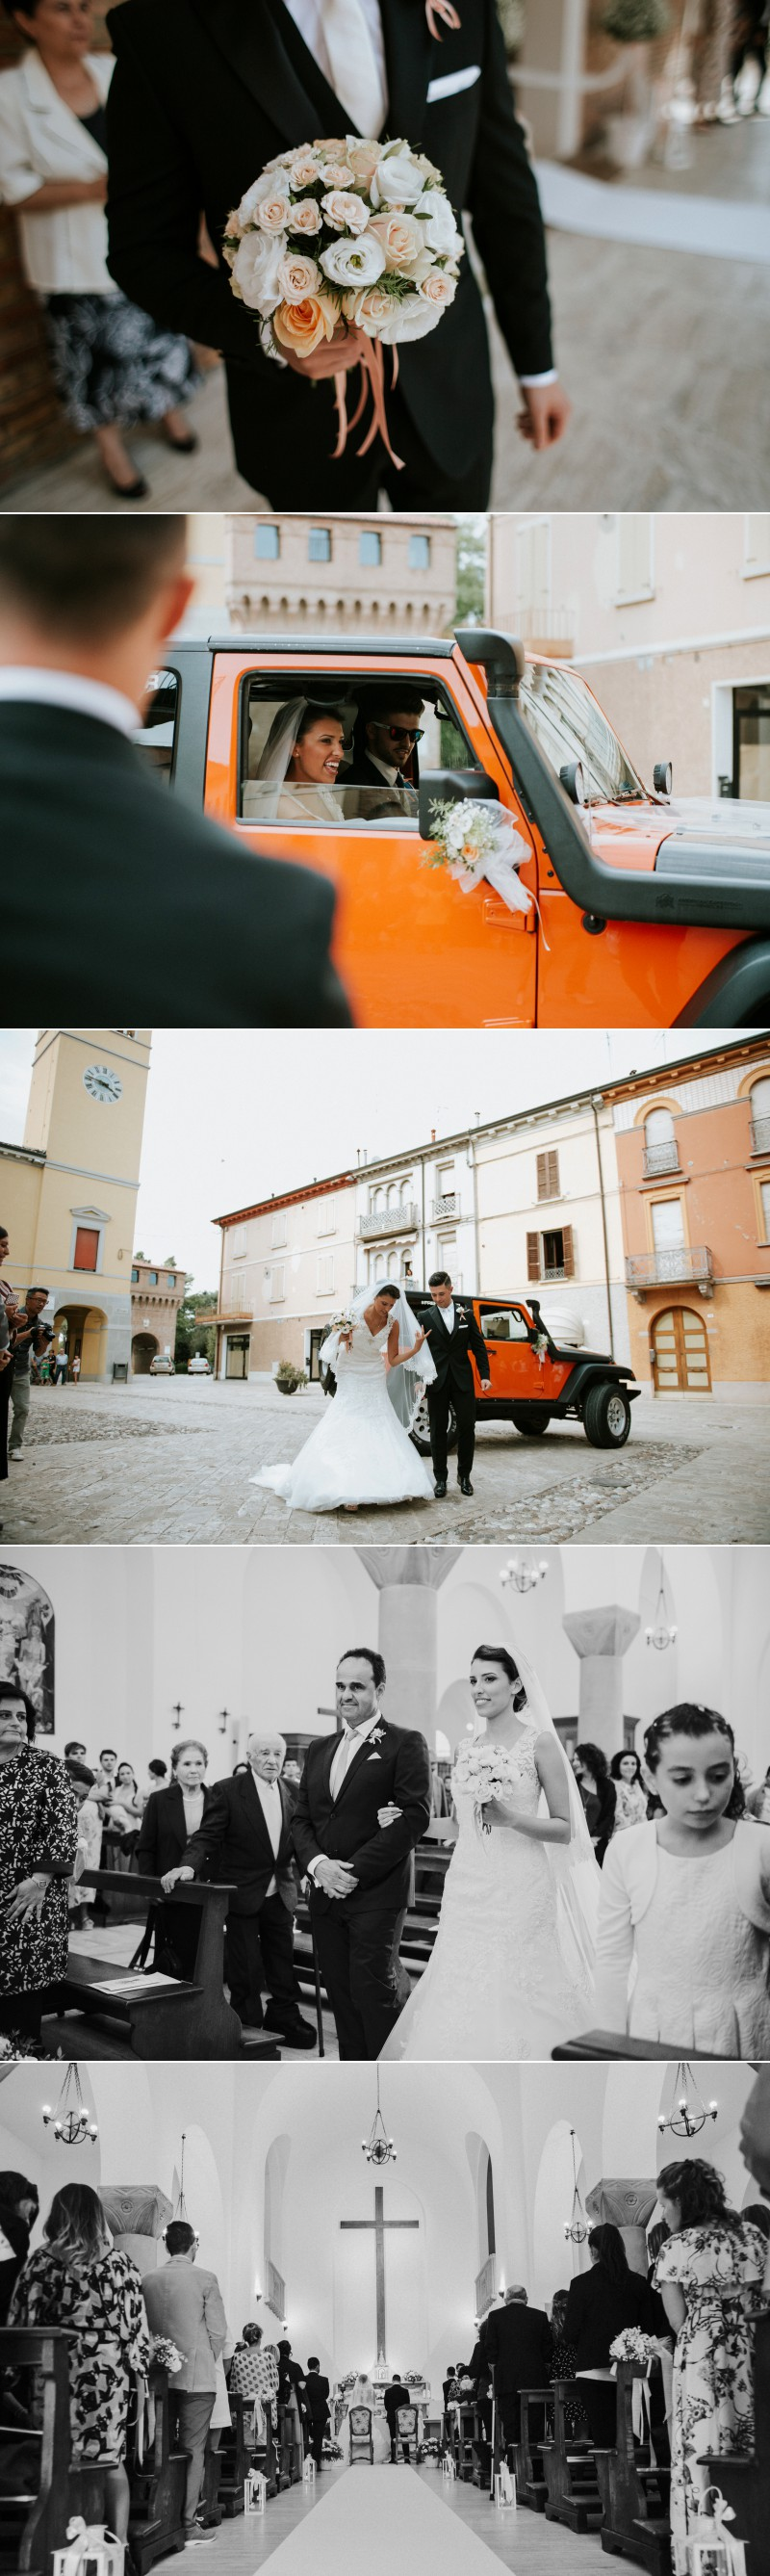 Wedding Photographer Bologna 4